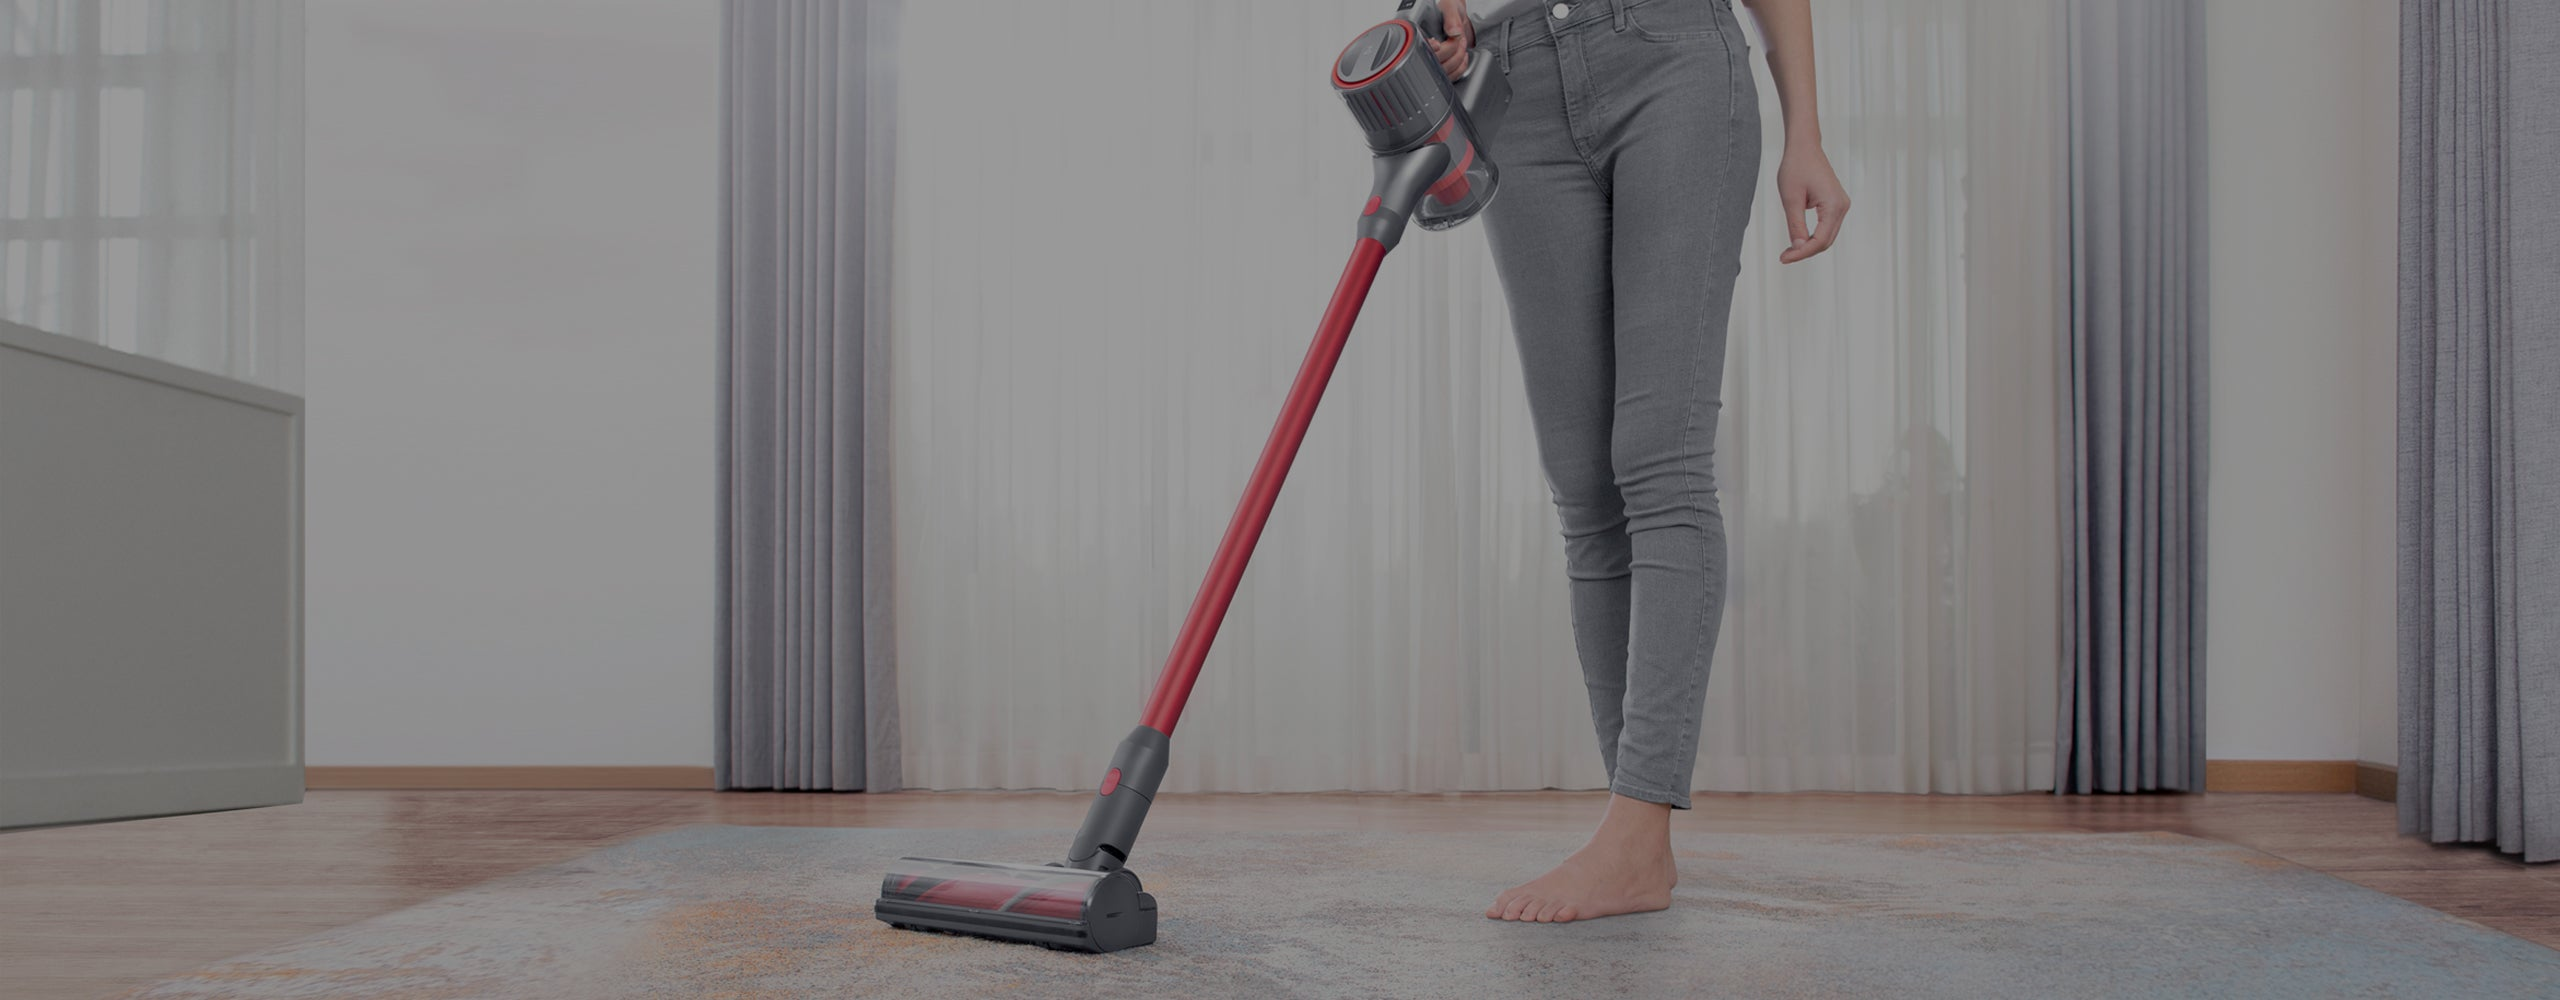 Roborock H6 Adapt - Built for Deeper Longer Cleaning